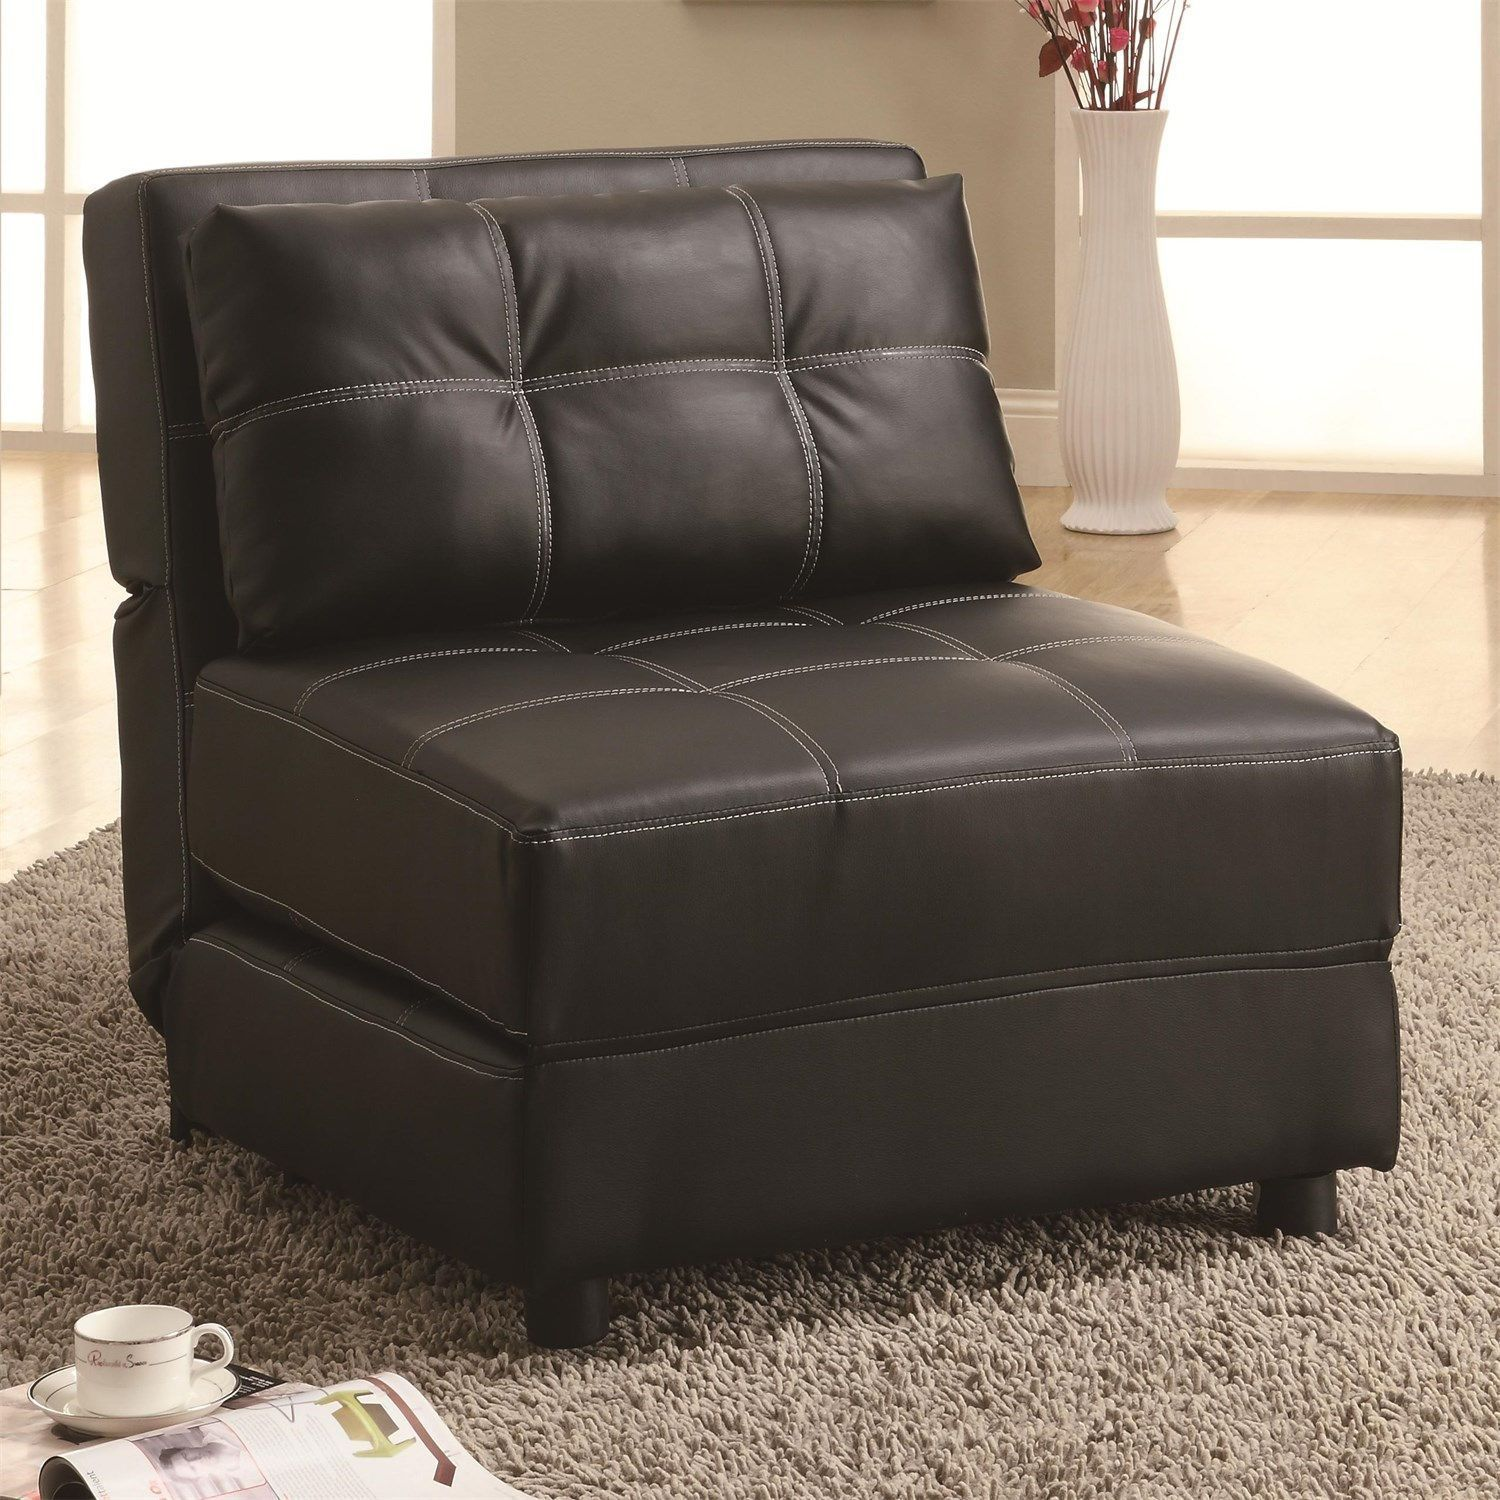 Coaster Furniture 300173 Accents Groups Lounge Chair Sofa Bed In  # Muebles Coaster